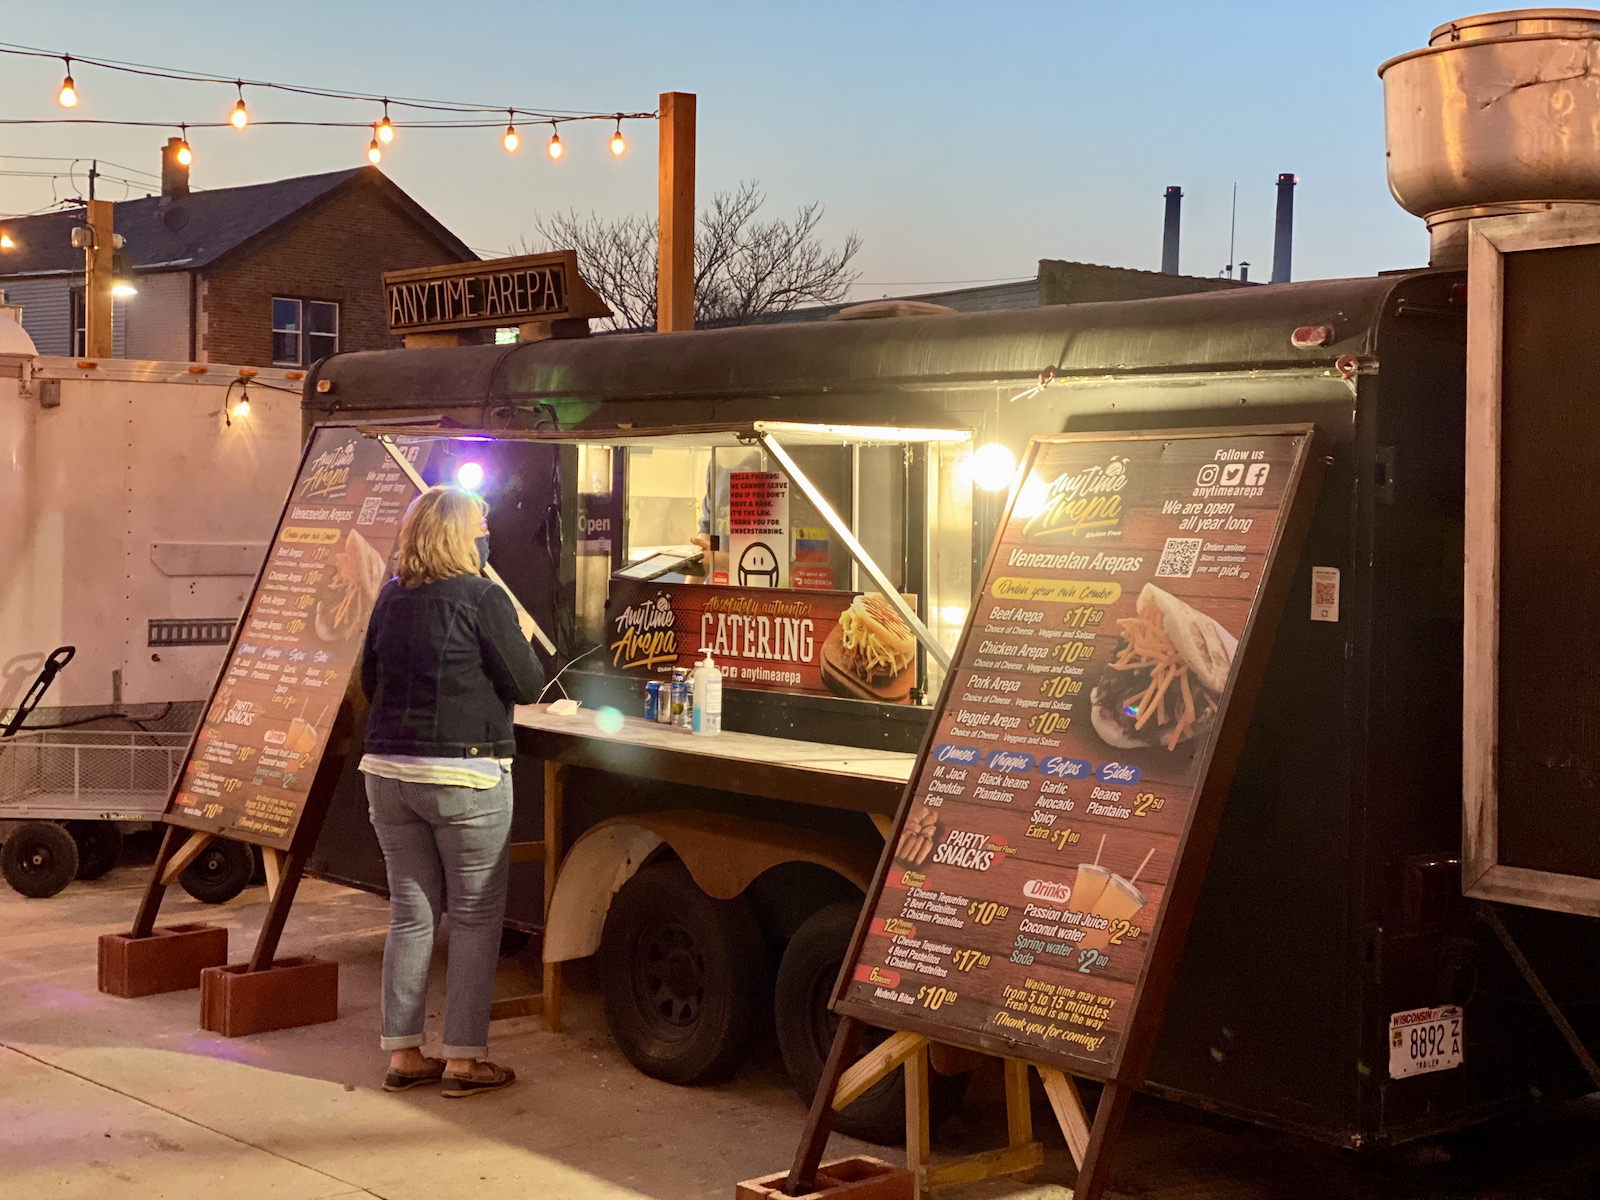 Anytime Arepa trailer at Zocalo Food Park